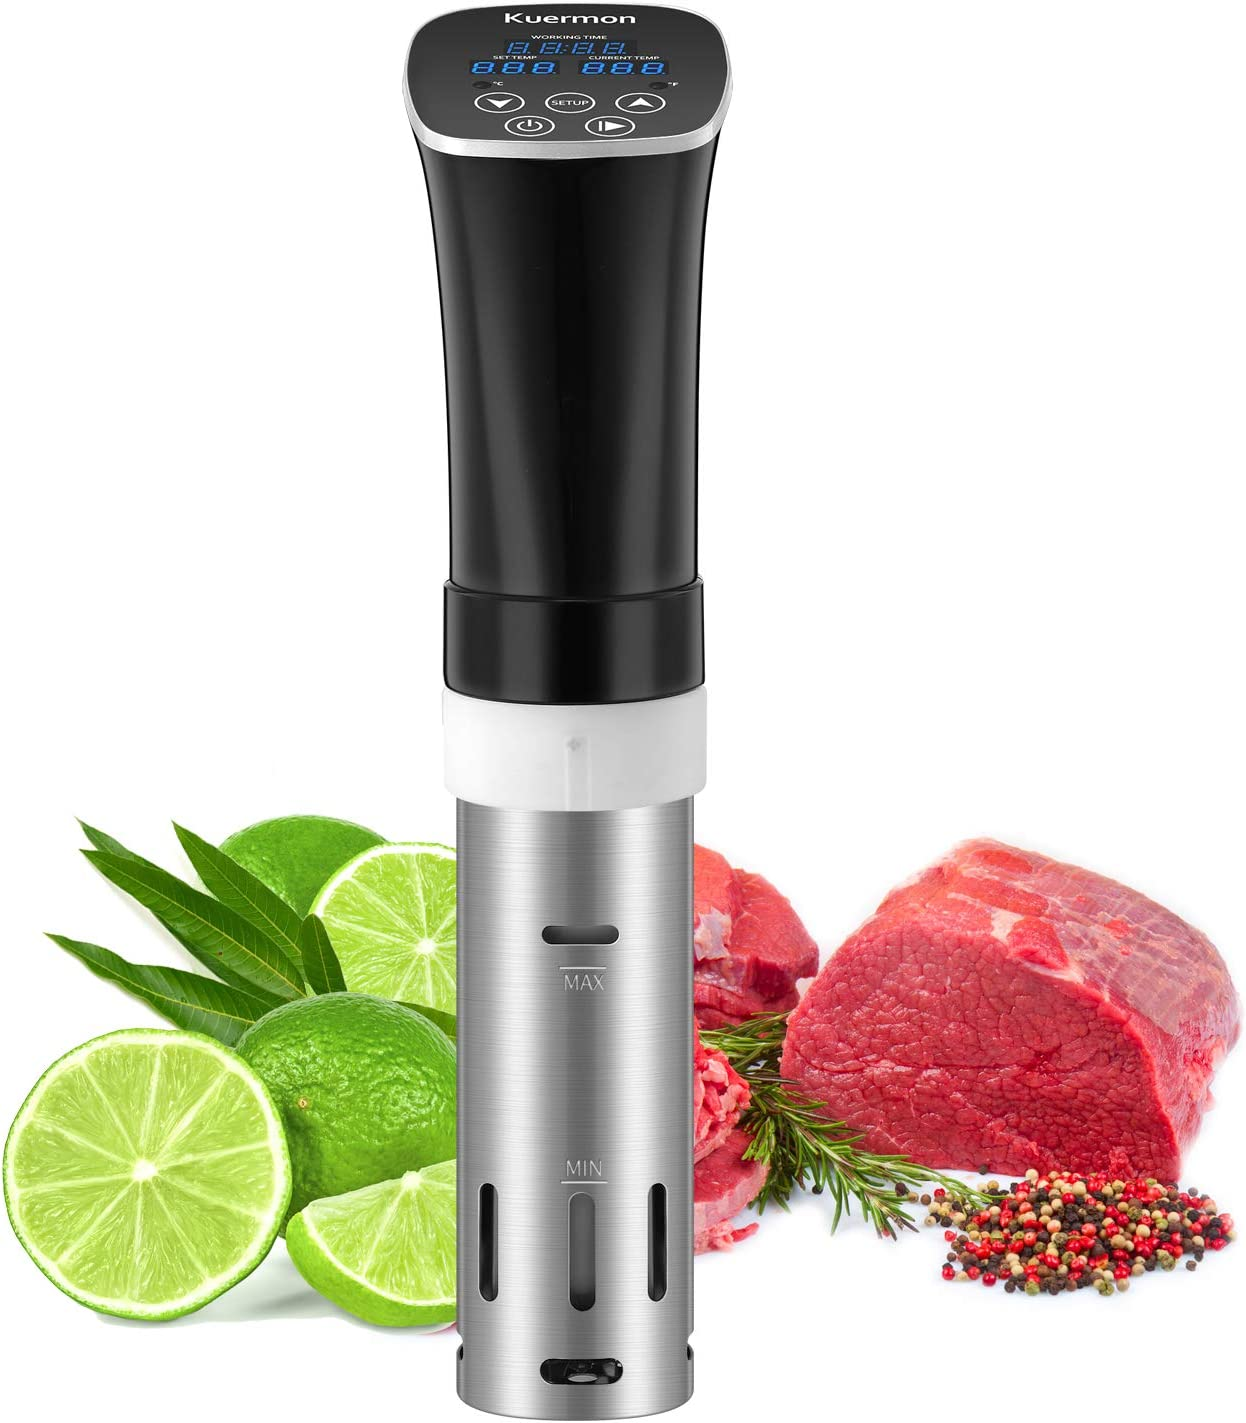 Sous Vide Cooker Accurate Temperature Digital Timer Thermal Immersion Circulators Ultra-Quiet 1000 Watts for Kitchen (SV238A)